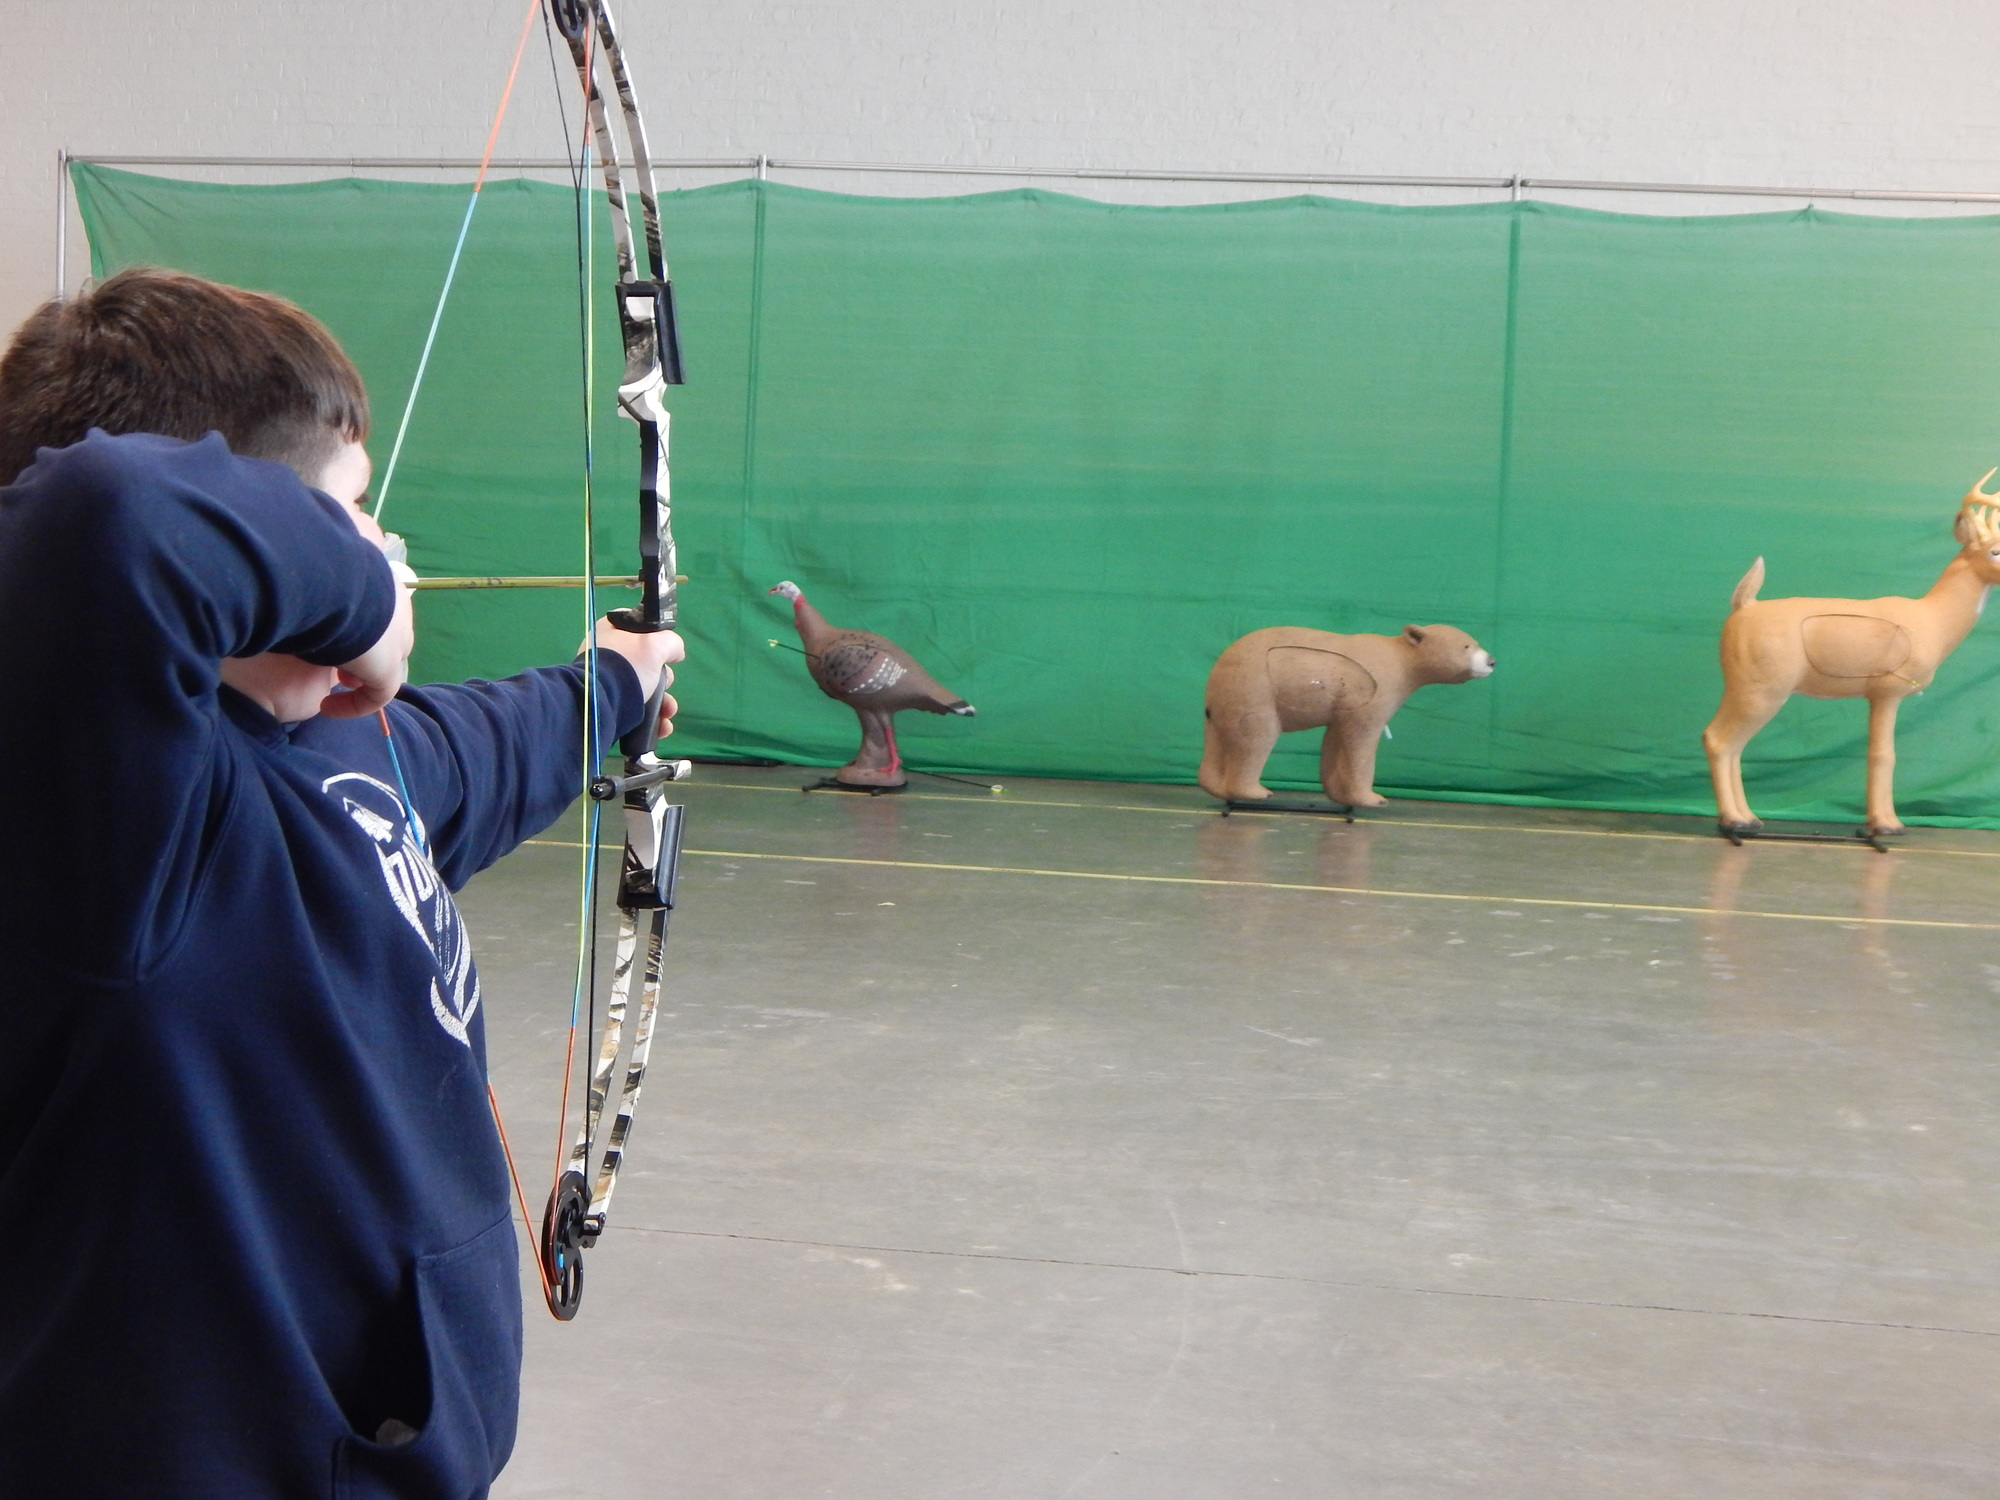 An archer takes aim at a 3D target in a school gym.